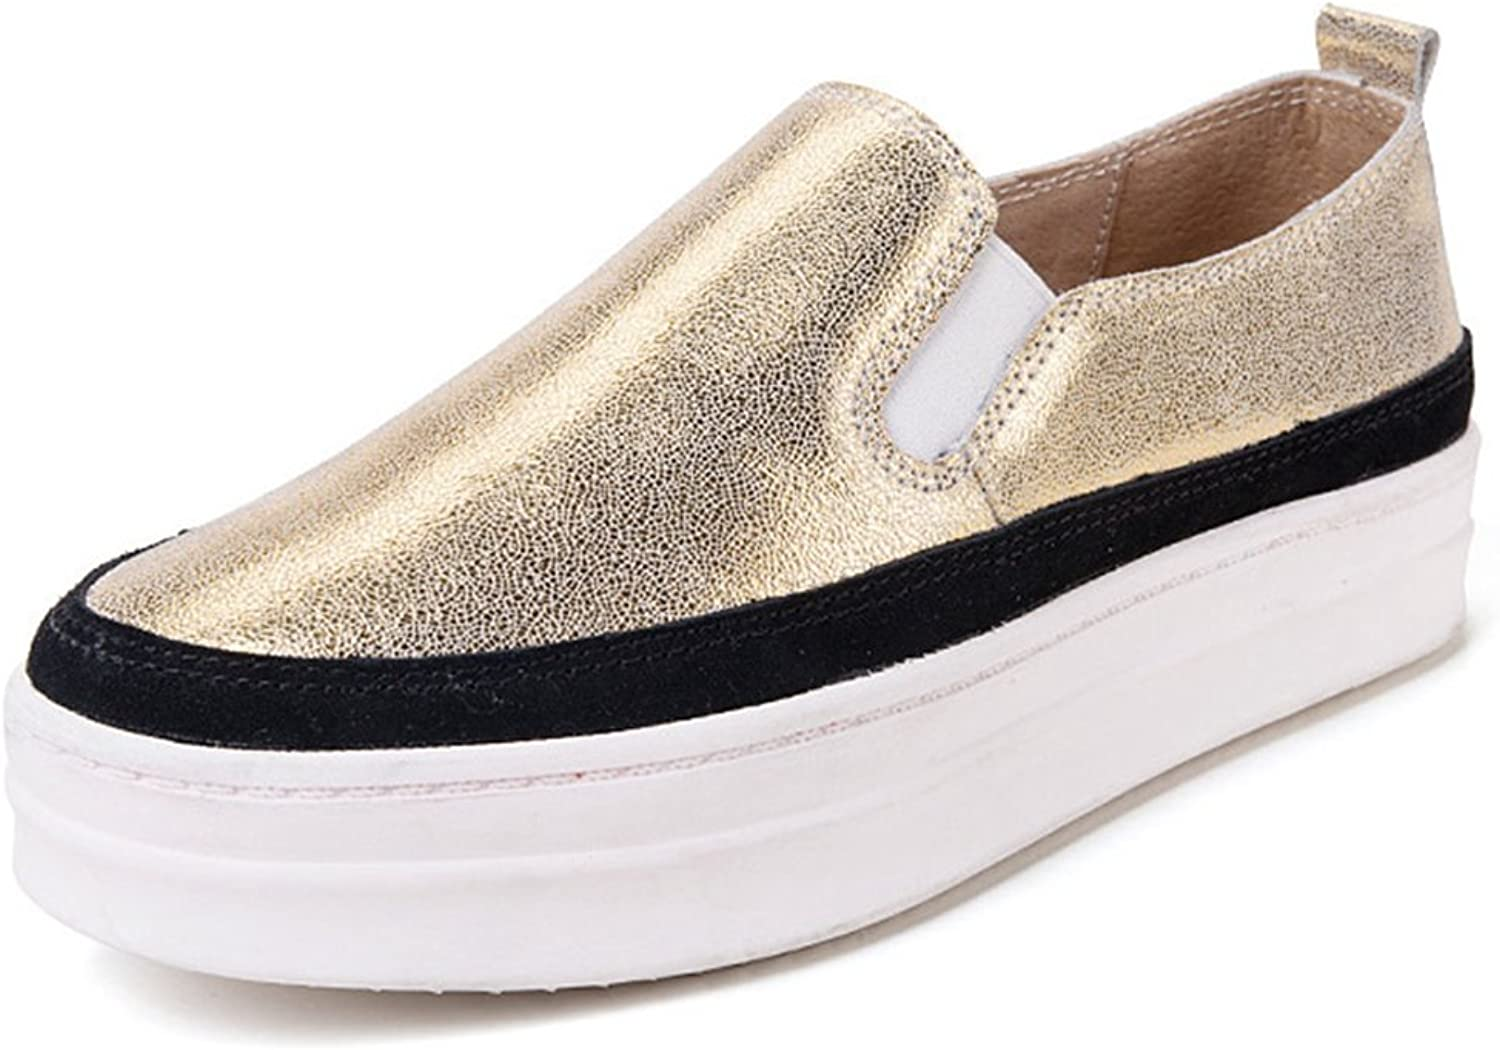 Hoxekle Womens Casual Low Heels Low Top Round Toe Rubber Sole Platform Slip On Loafer shoes